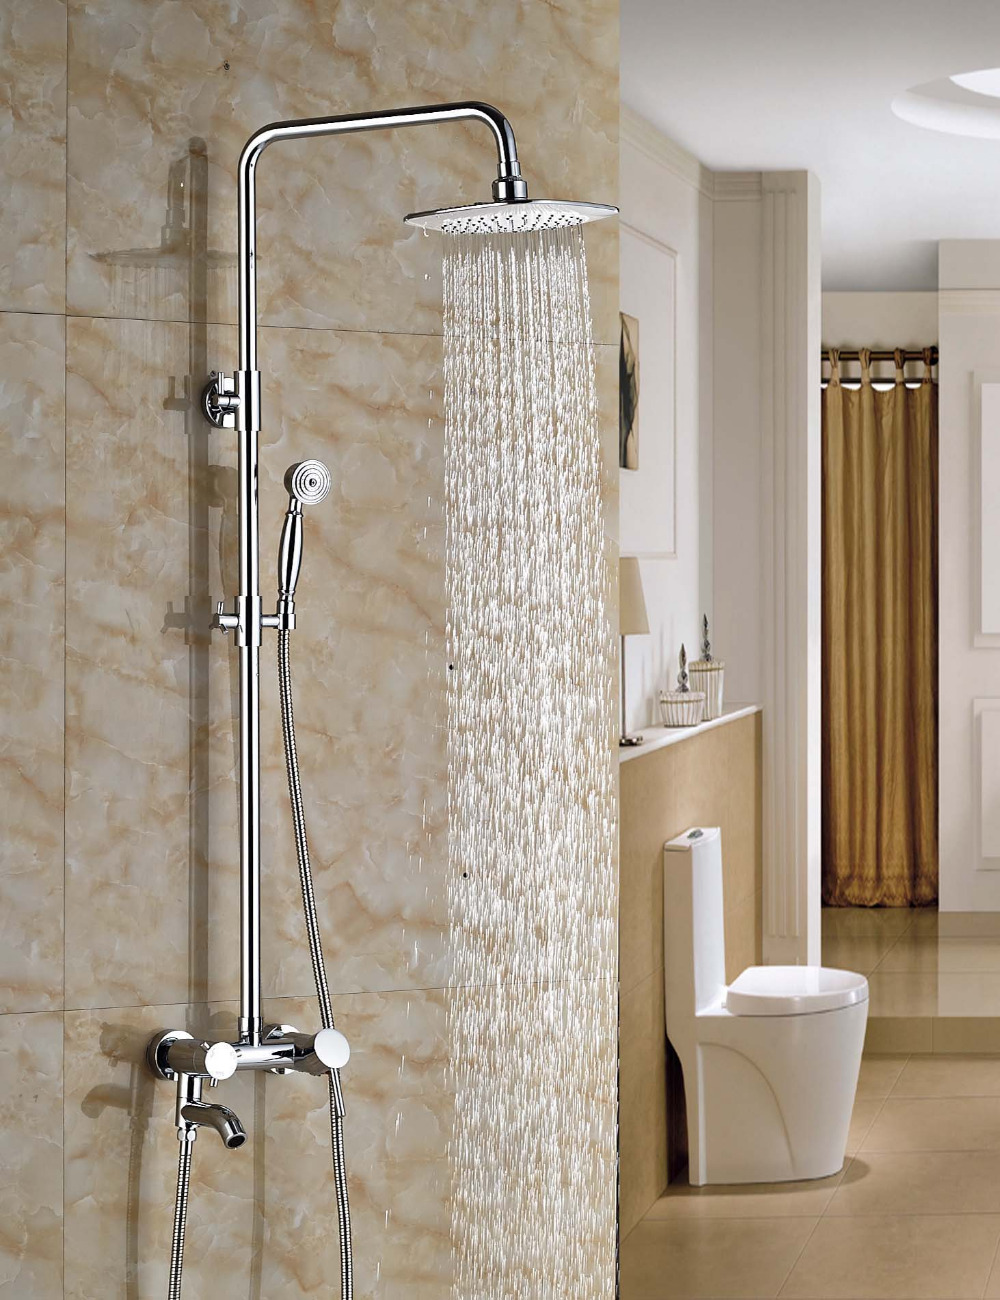 Wholesale And Retail Chrome Rainfall Shower Head Single Holder Dual Control Wall Mounted Shower Faucet Tub Spout W/ Hand Shower wholesale and retail promotion deck mounted chrome brass waterfall spout bathroom tub faucet w hand shower